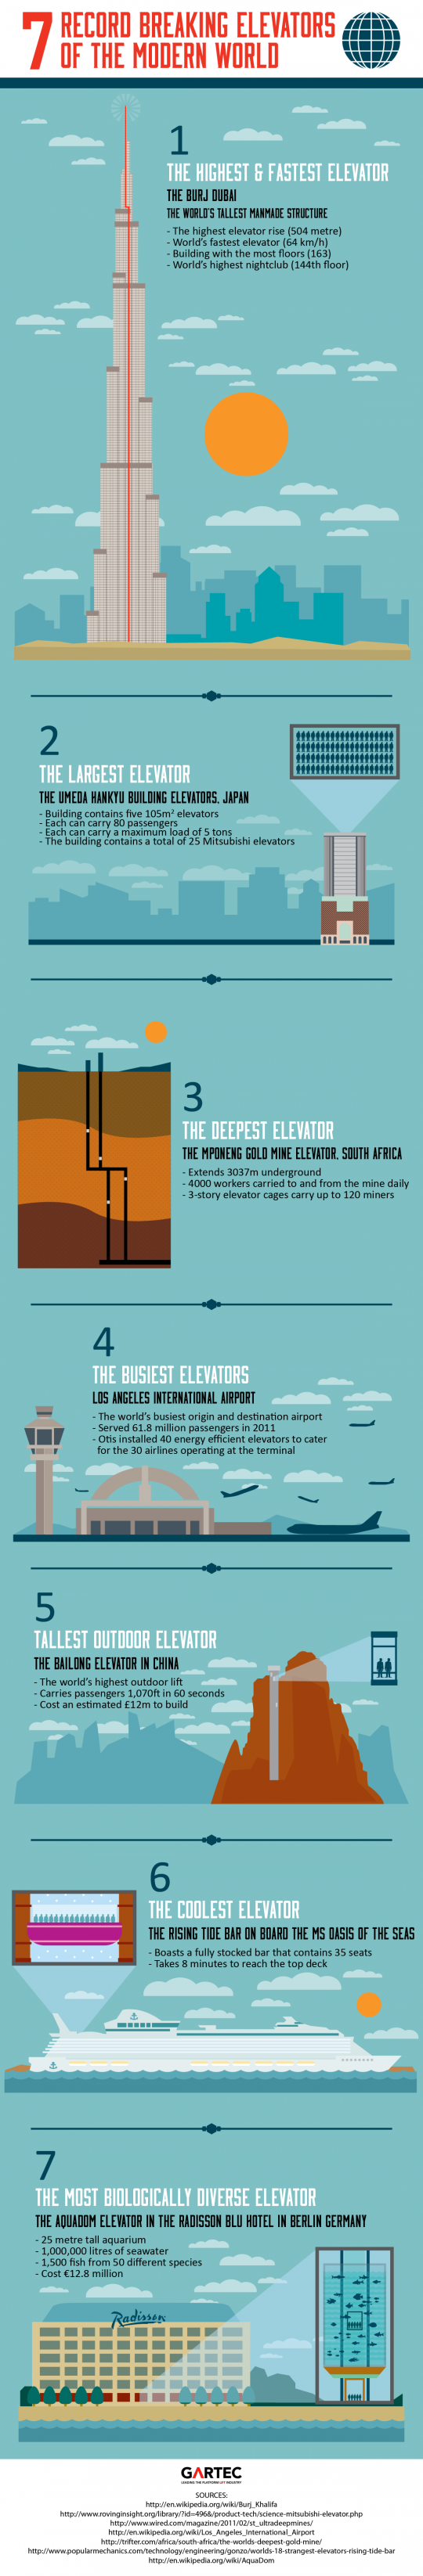 7 Record Breaking Elevators Of The Modern World